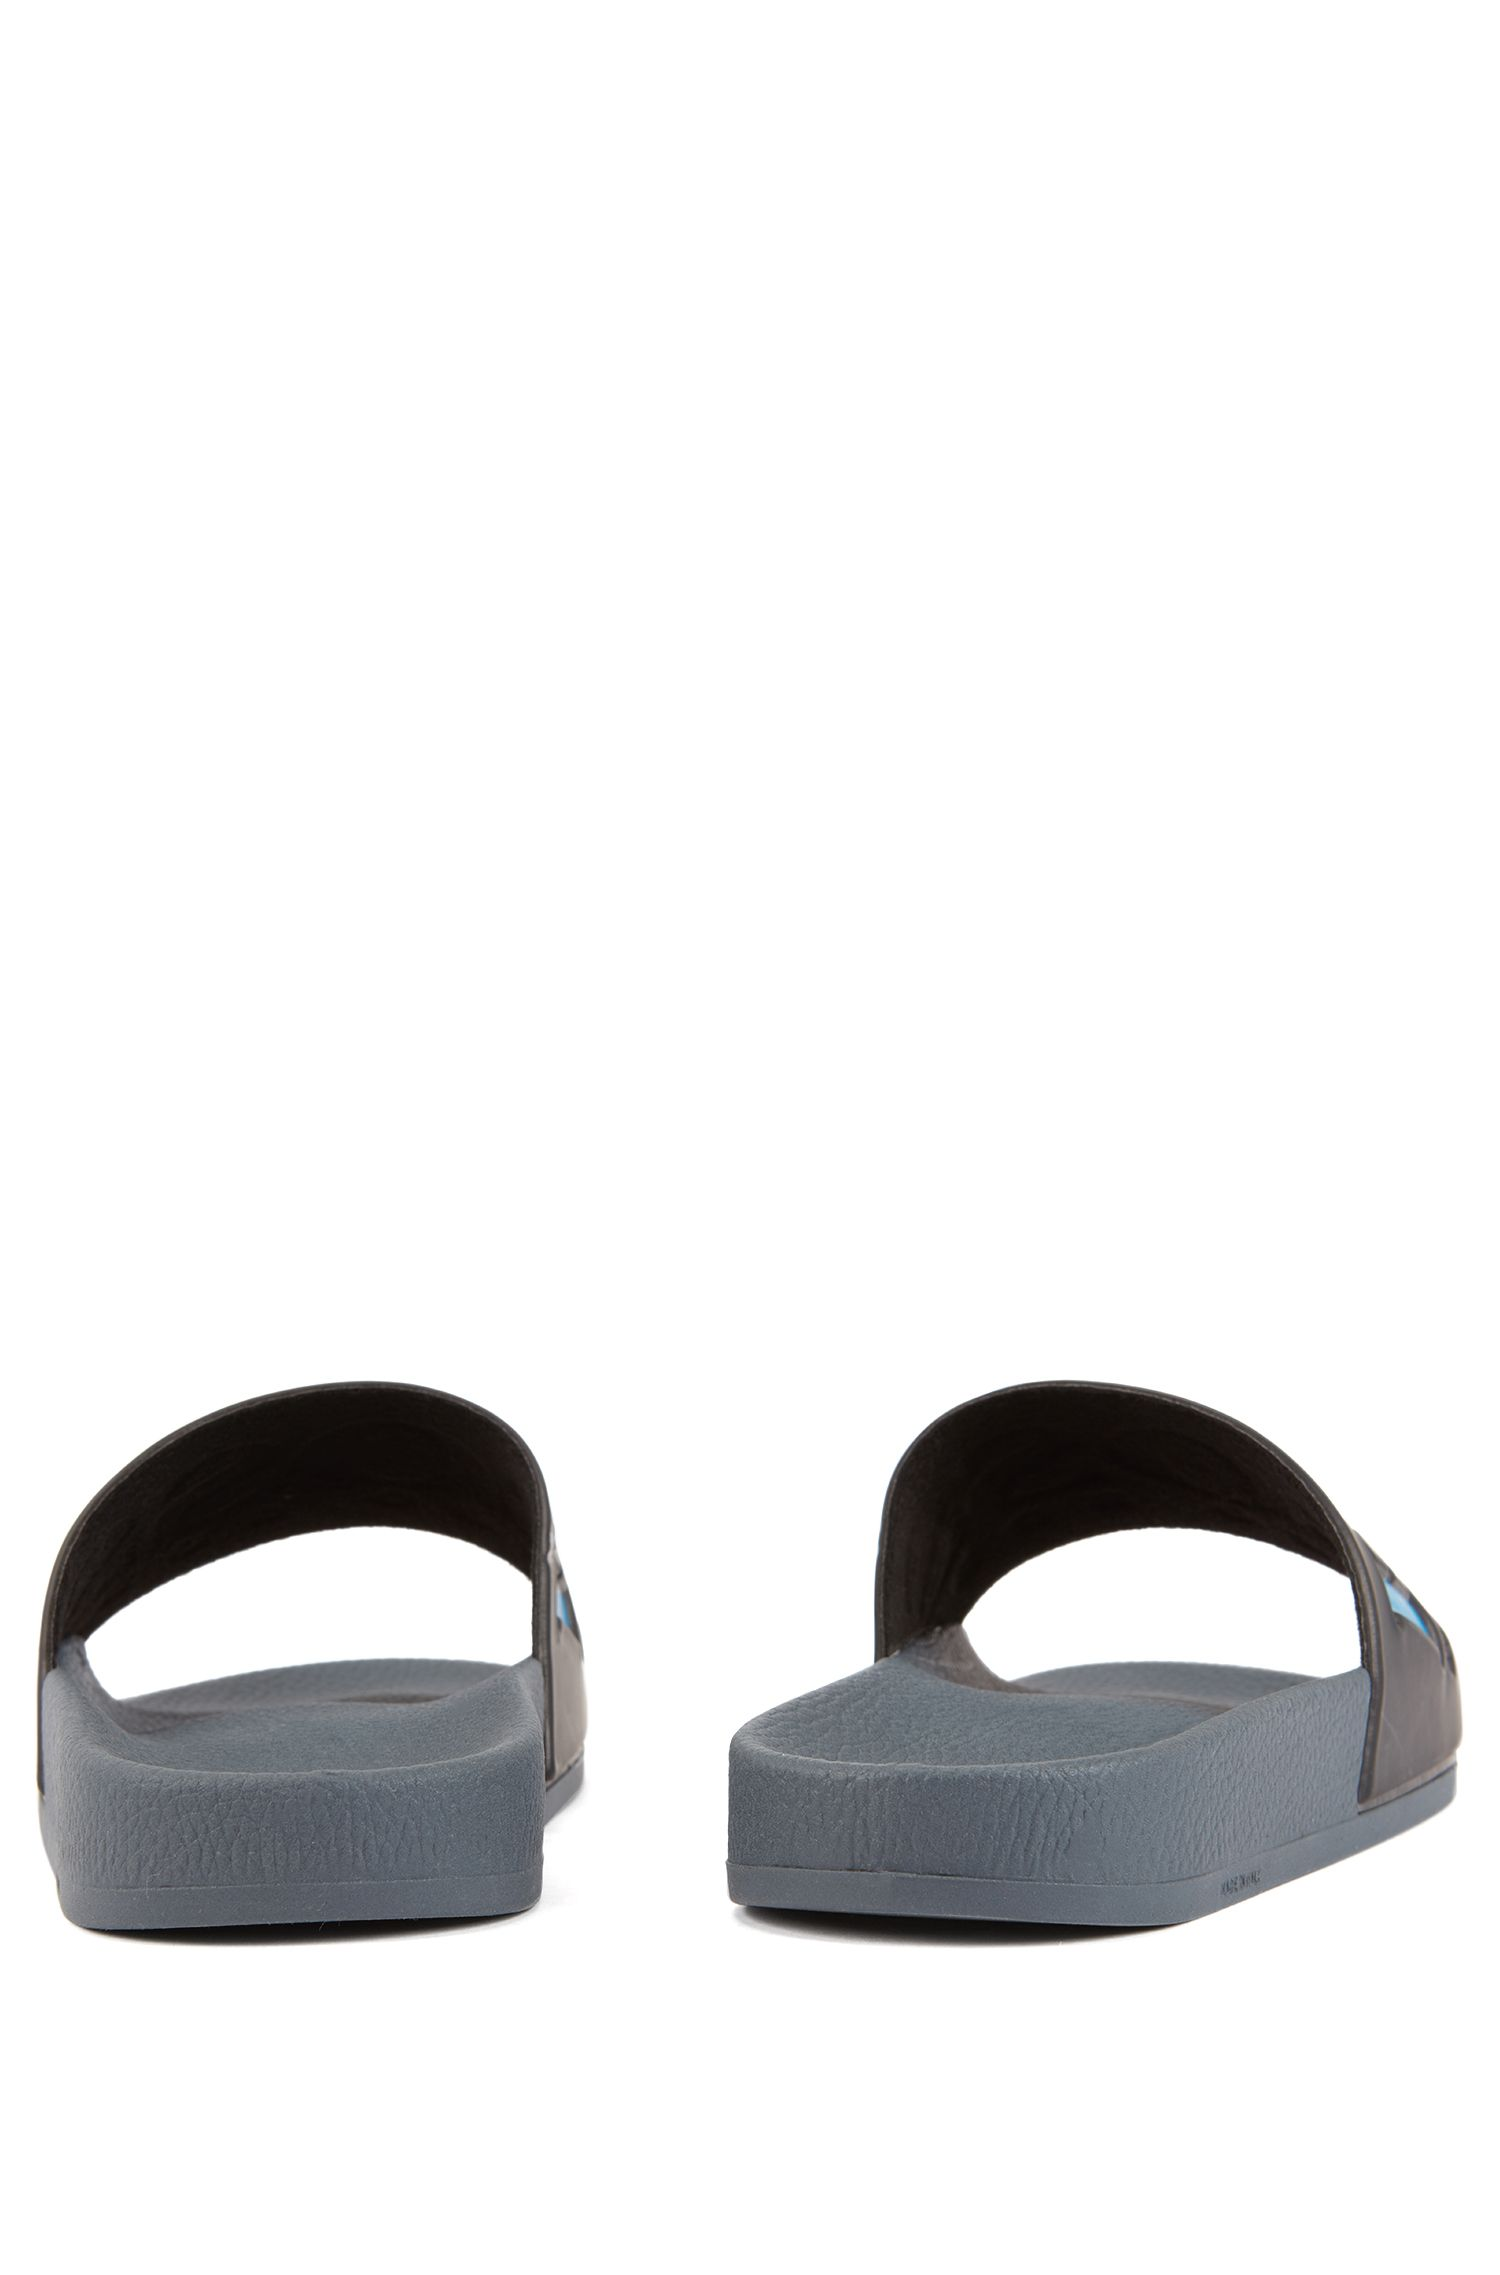 Italian-made rubber slide sandals with contrast logo, Grey